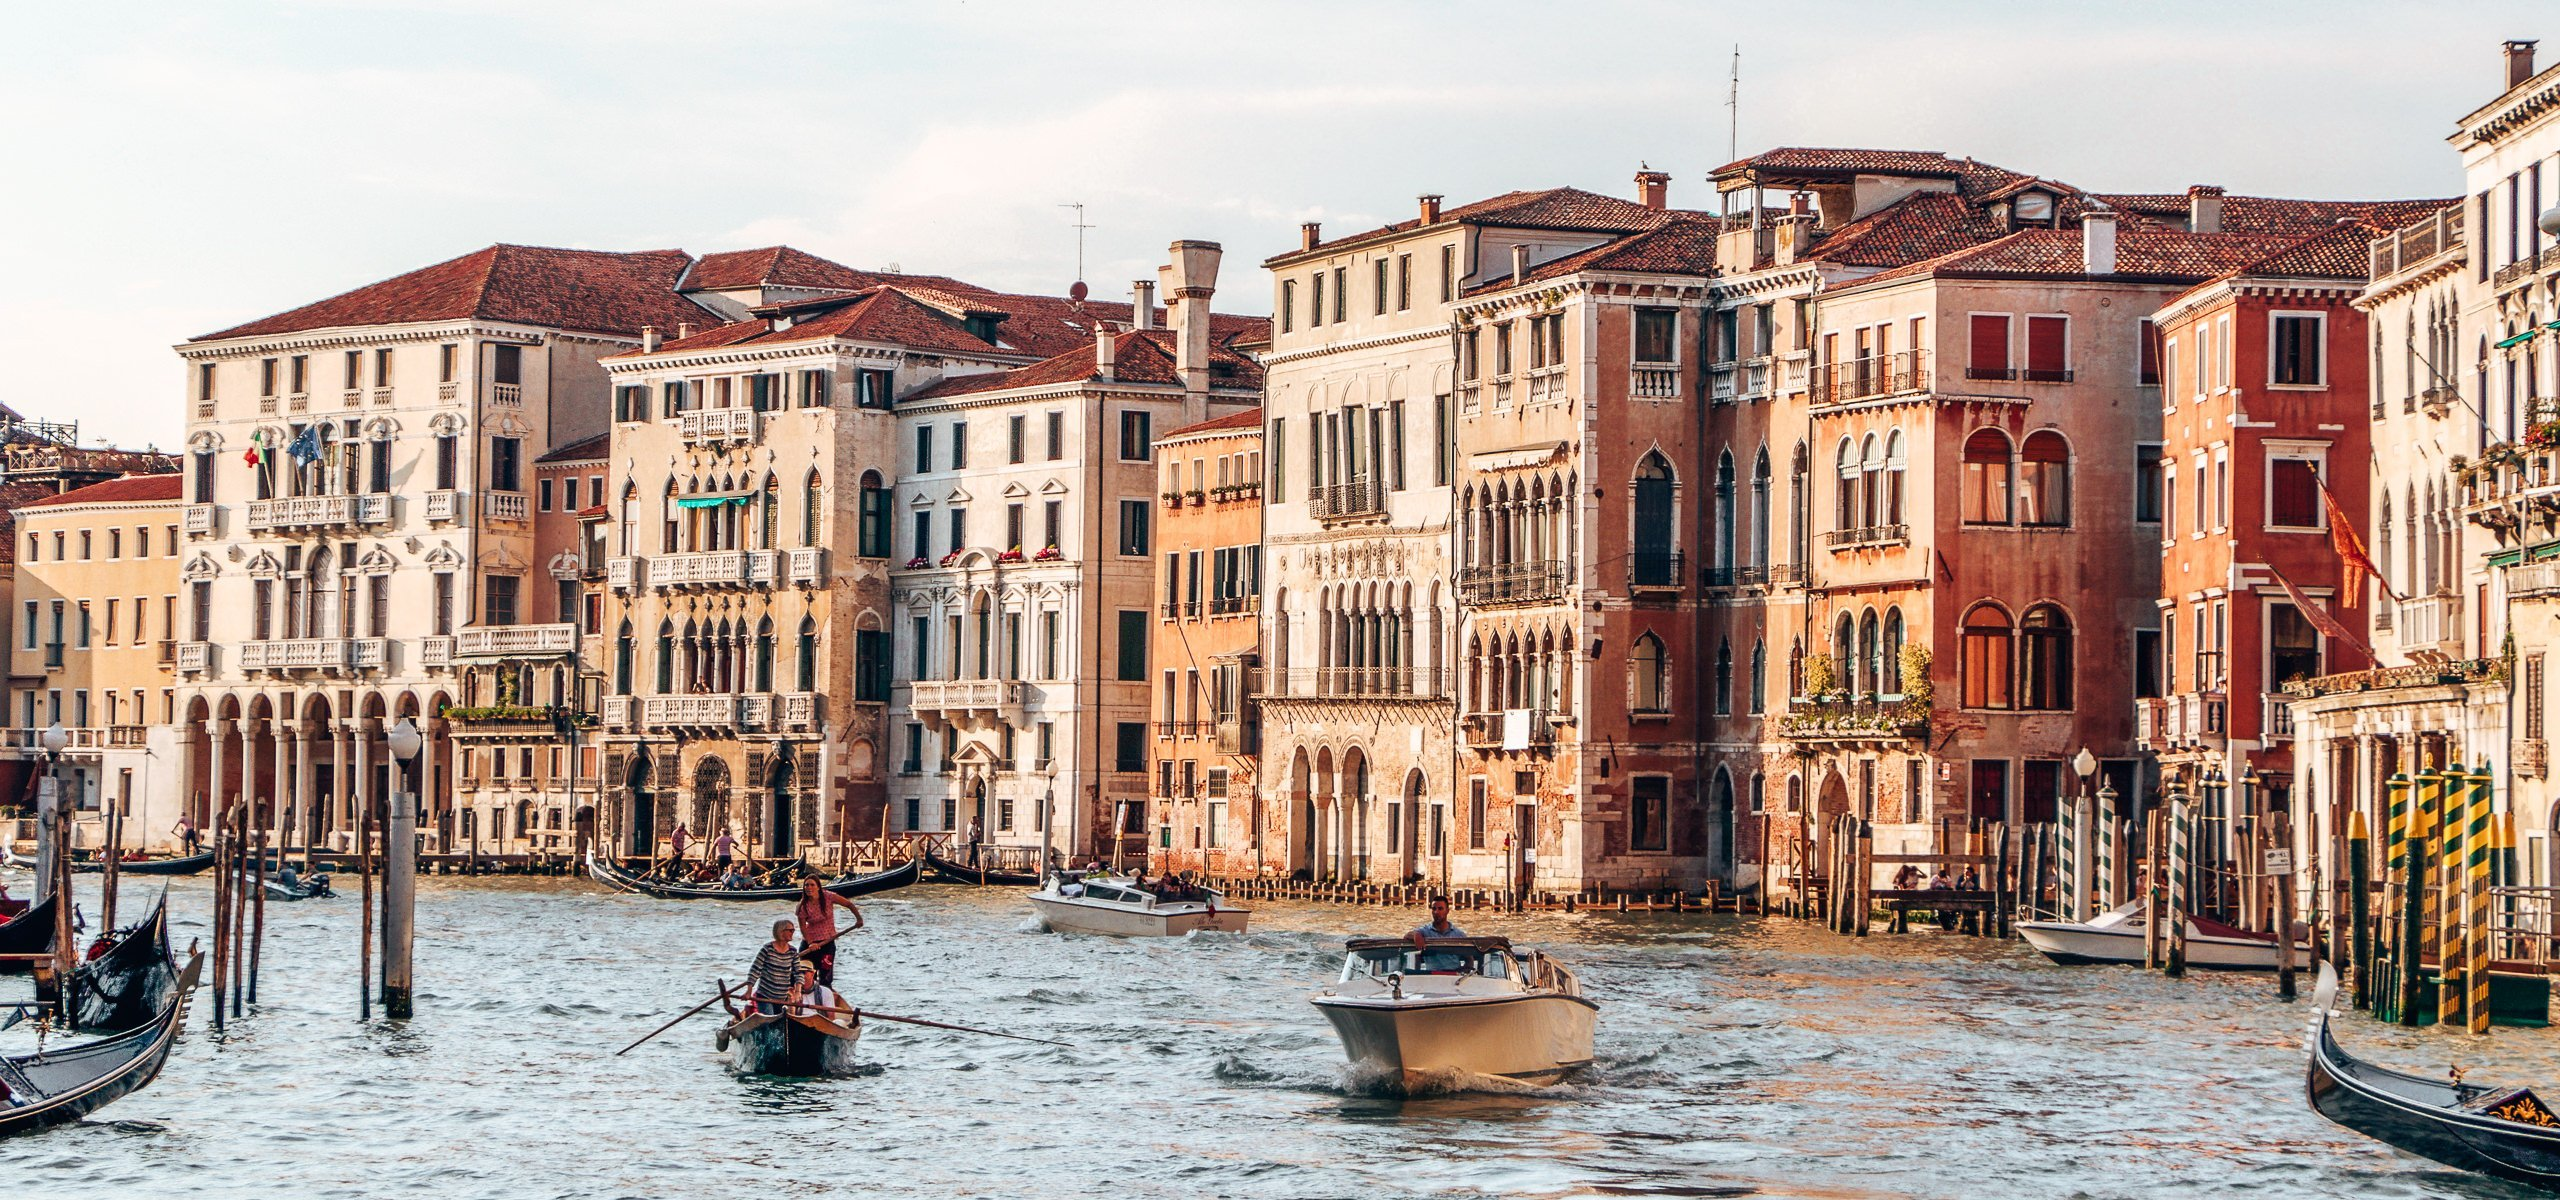 Boats and gondolas share the canals in Venice, Italy